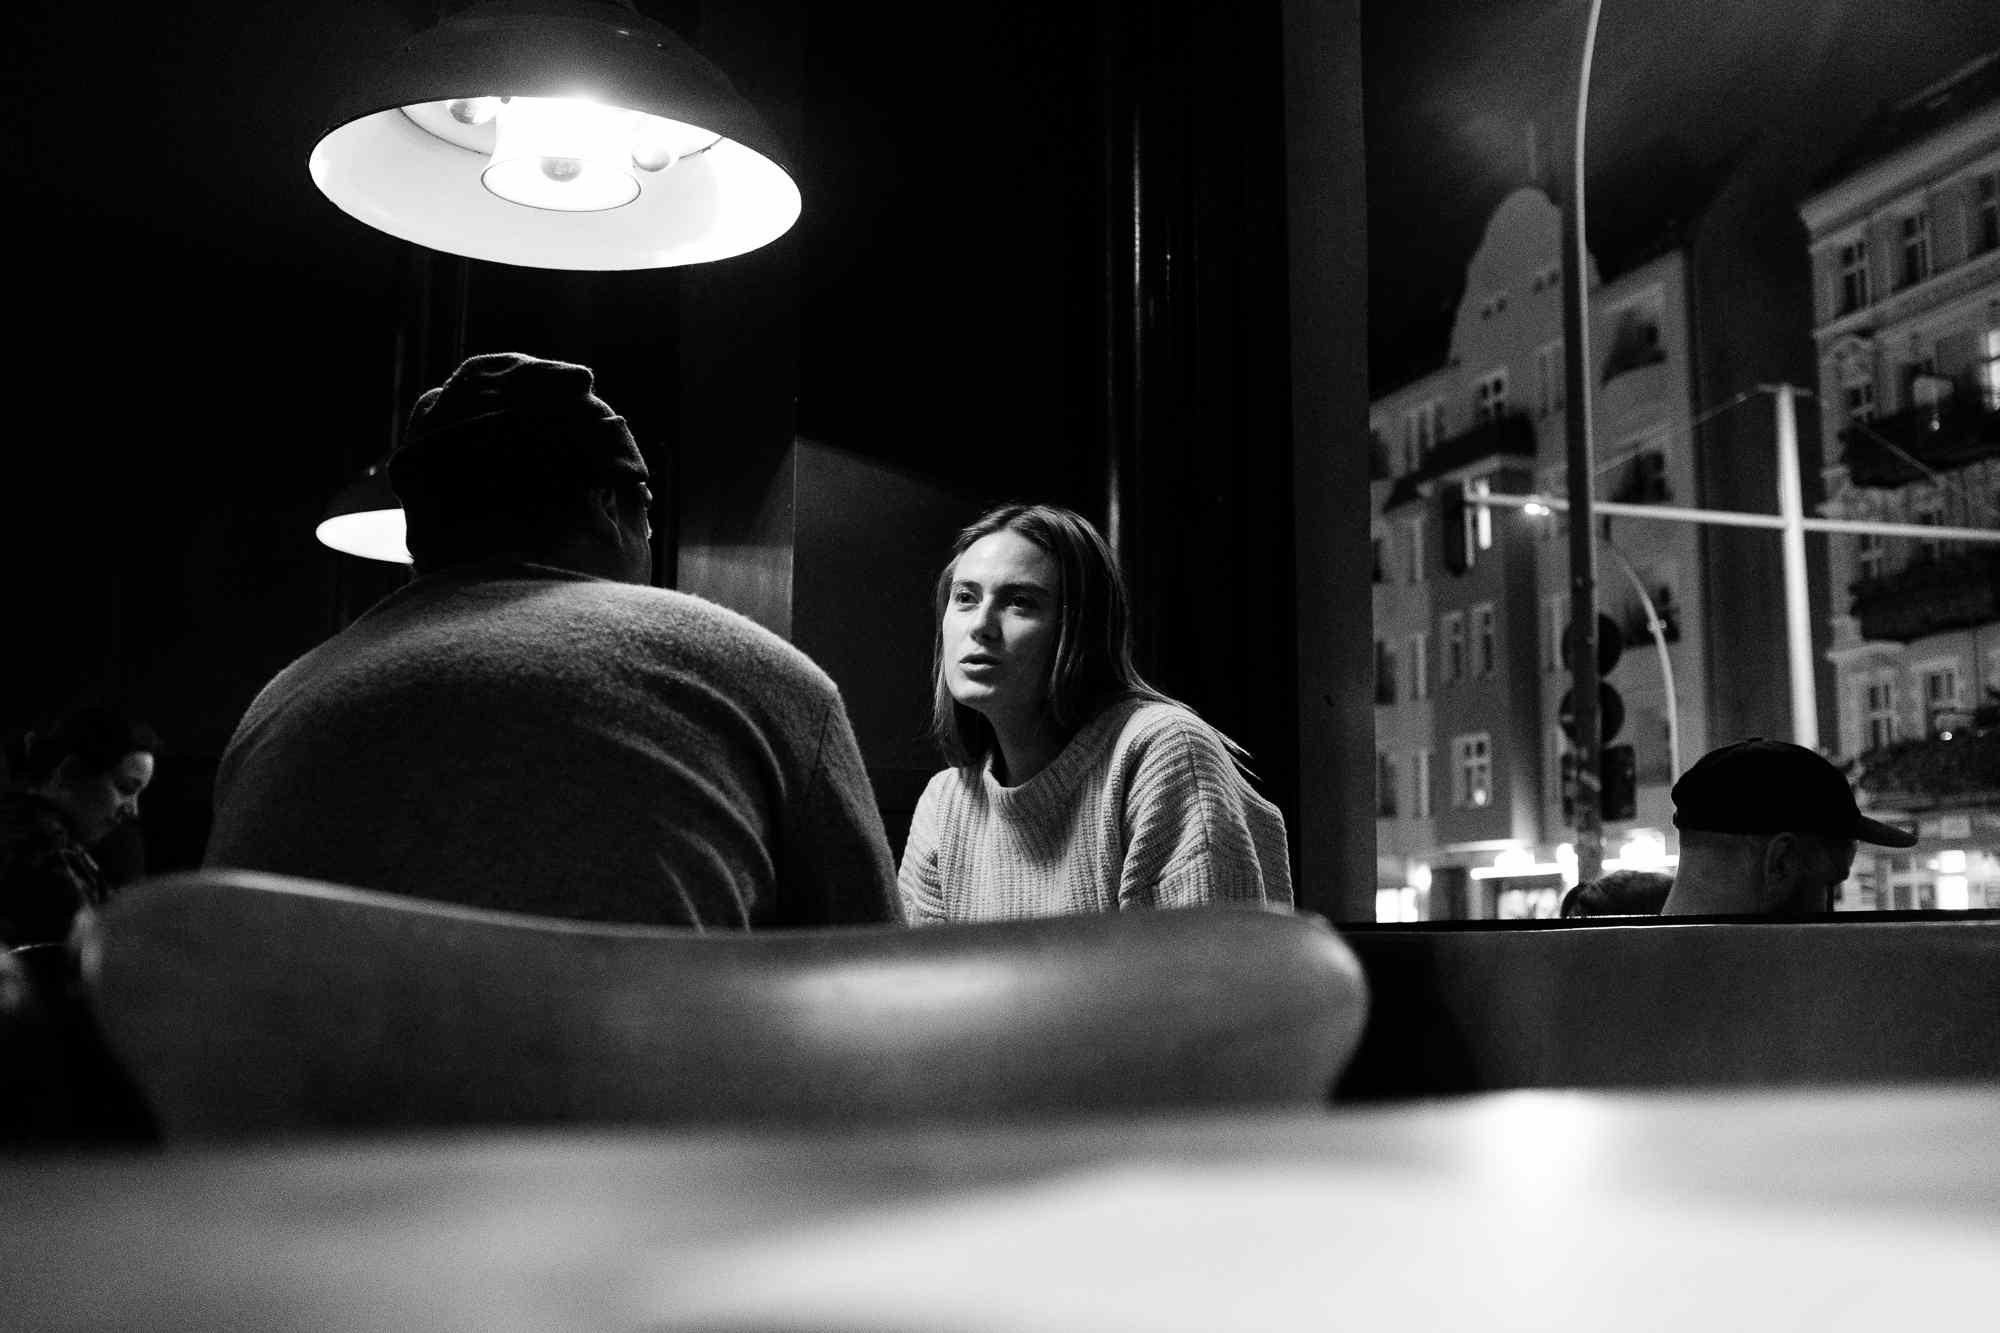 A boy and a girl in conversation in a dark bar in Berlin, Germany